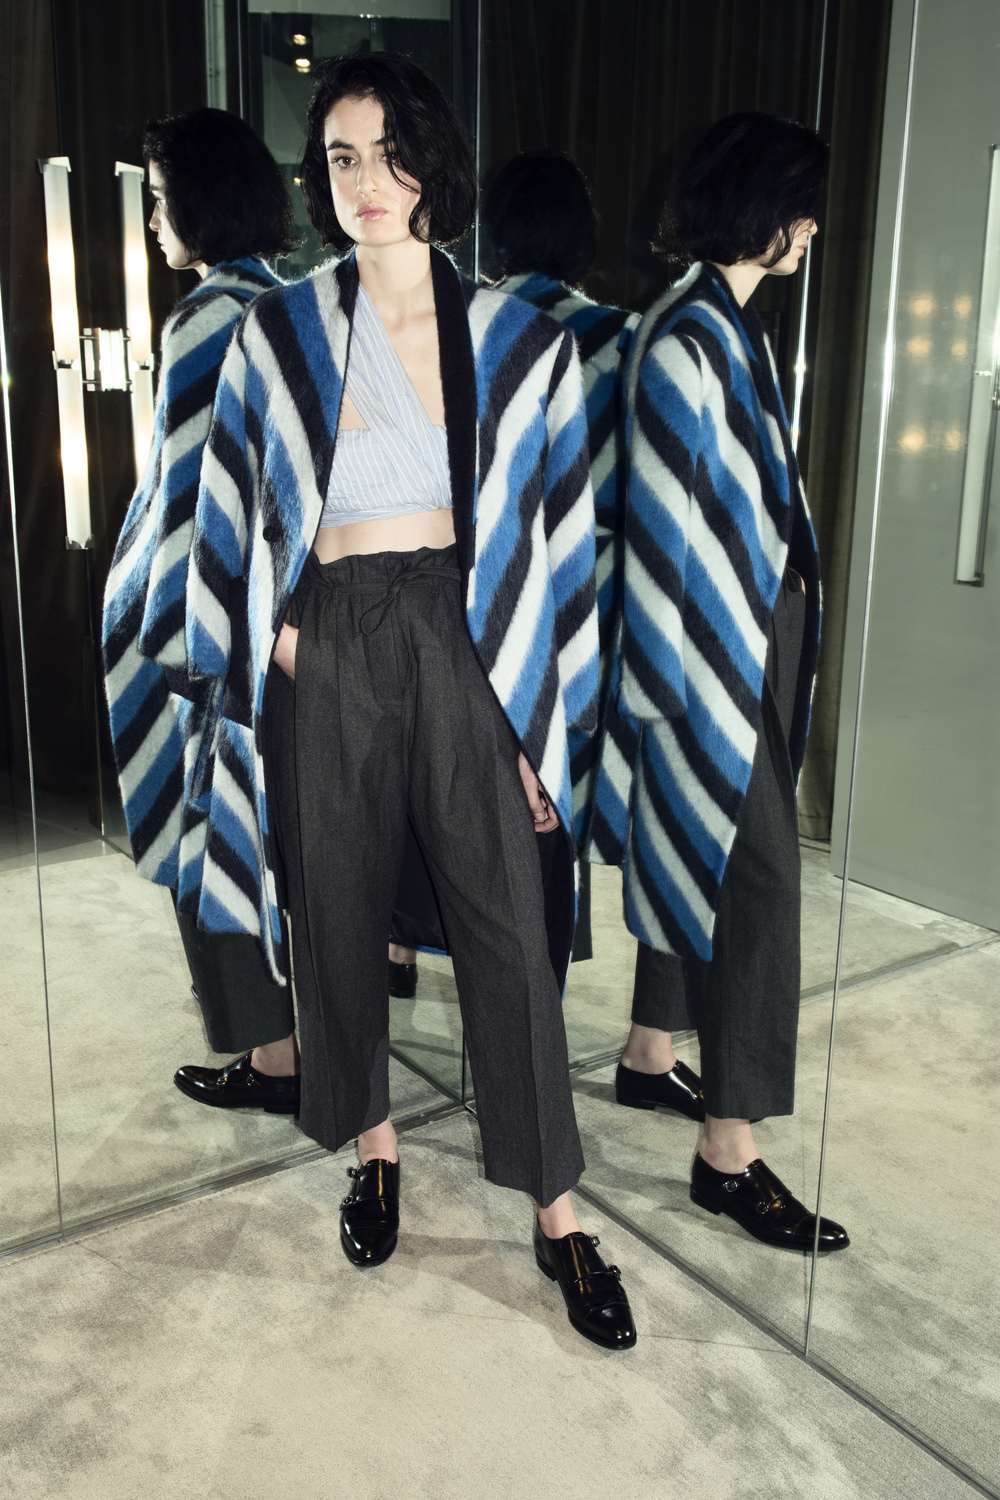 Shoes   Church's   $605 | Crop Top   Baja East   $495 | Pants   Pomandere   $410   Coat   Fausto Puglisi   $2375